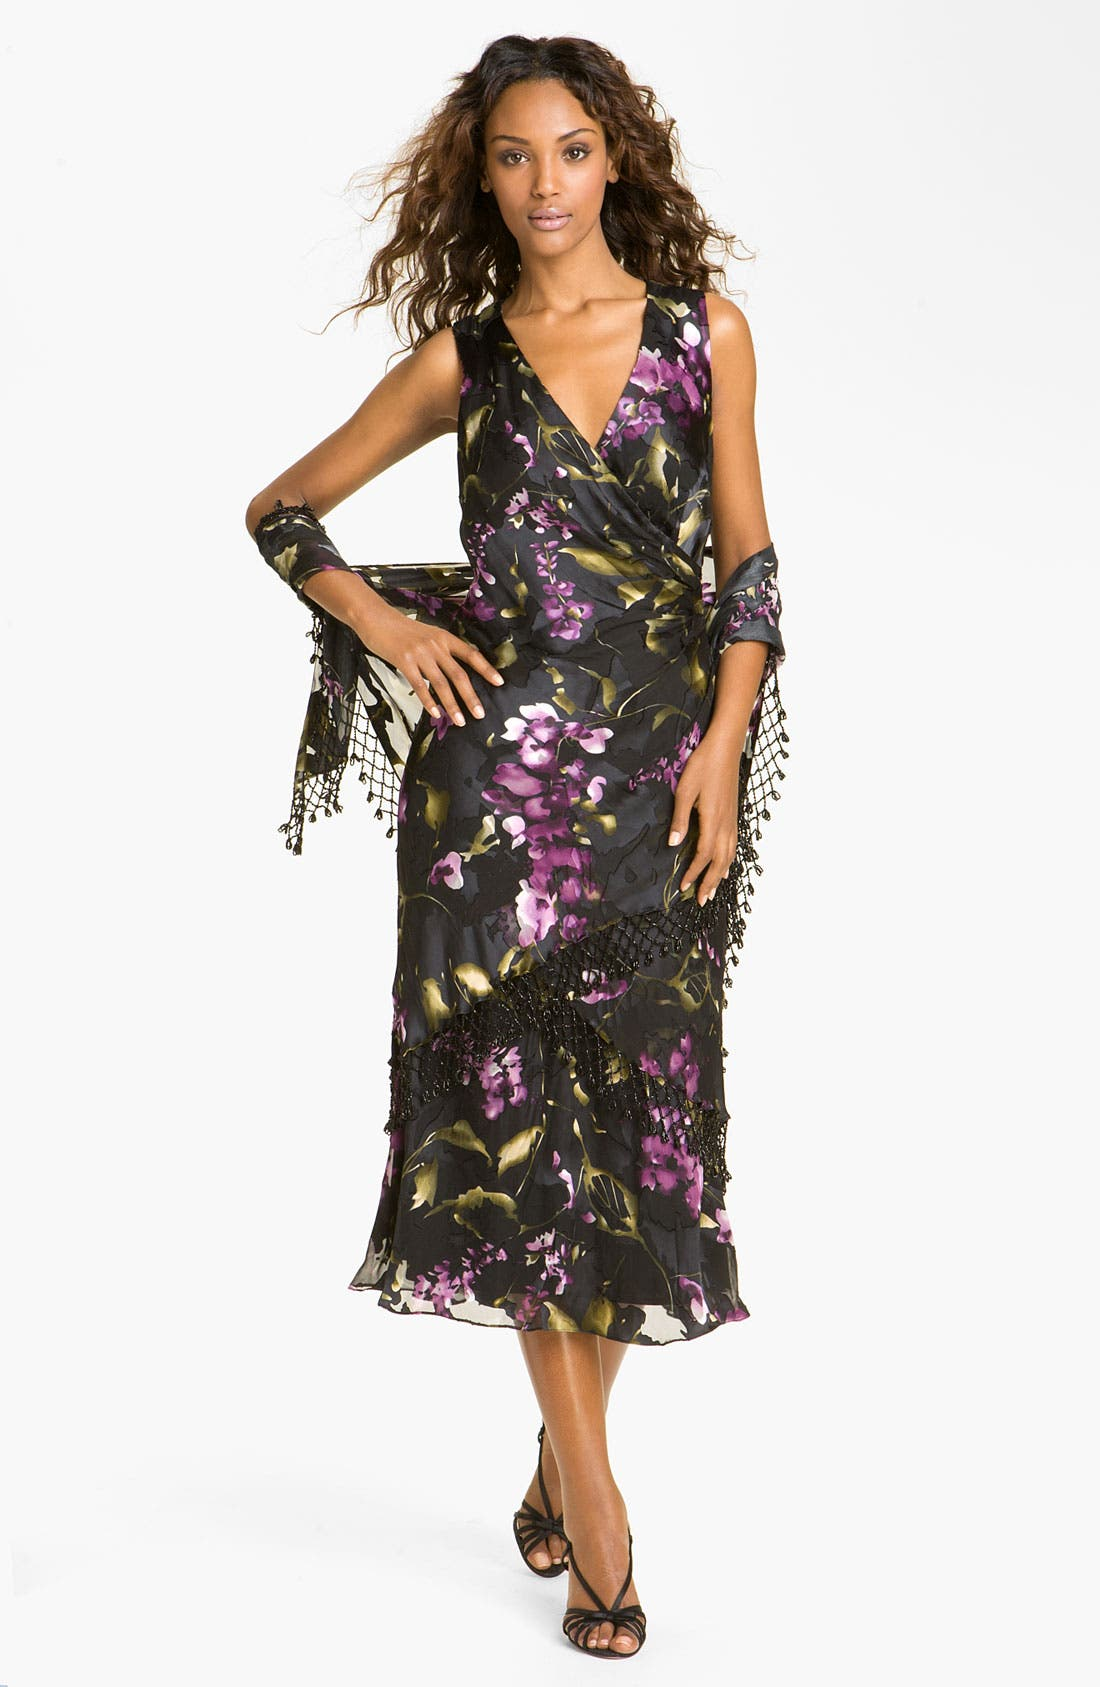 Alternate Image 1 Selected - Alex Evenings Floral Print Mixed Media Dress & Fringed Shawl